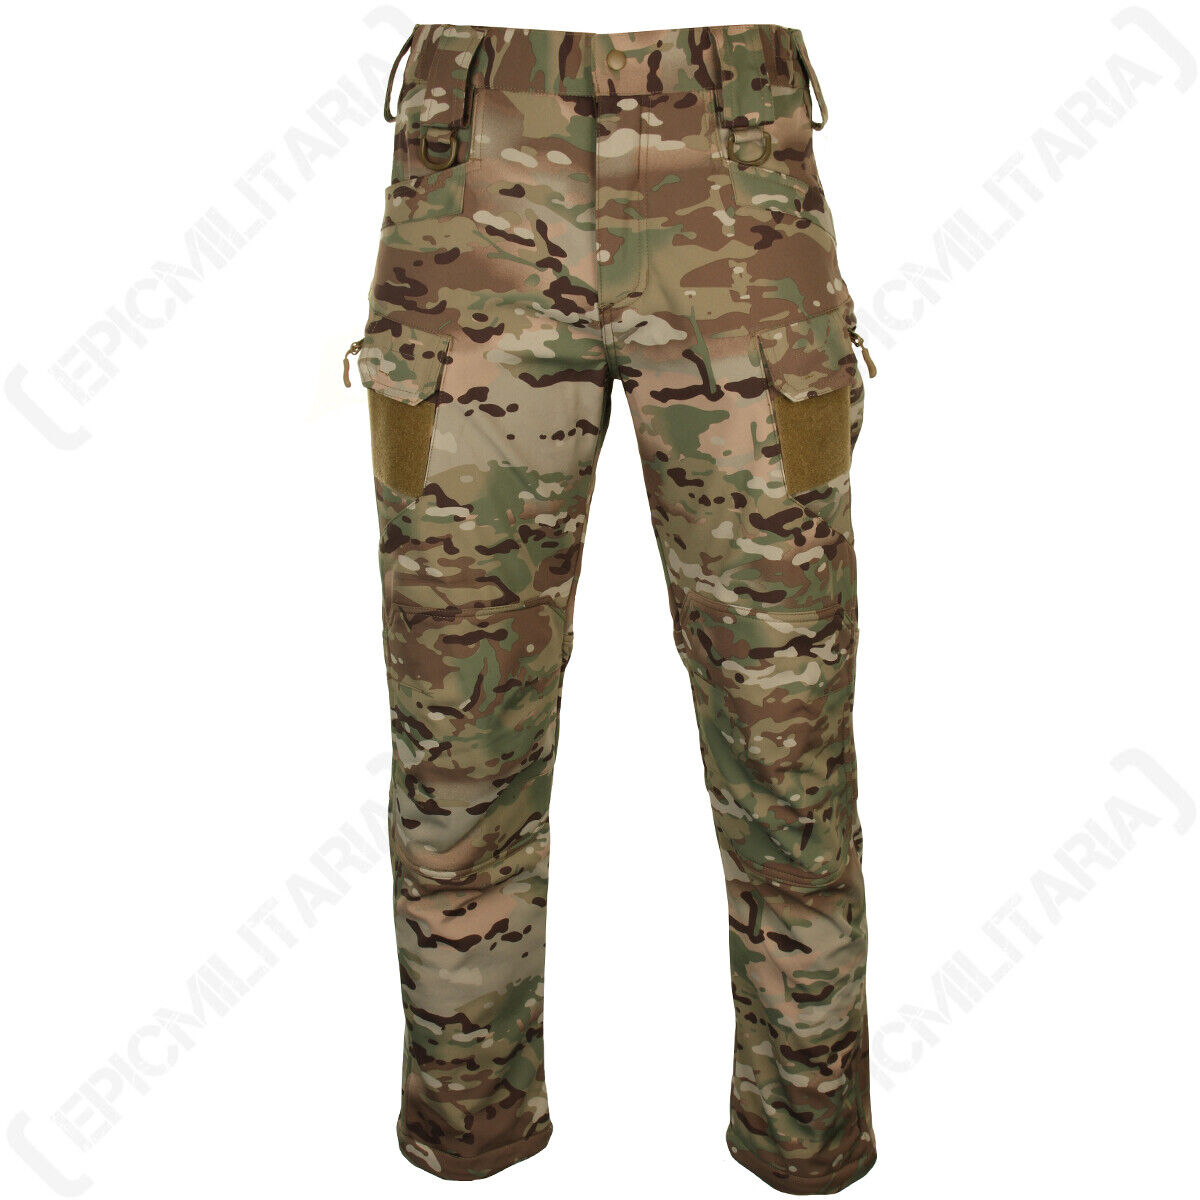 Softshell Trousers - Multitarn Camo - Pants Outdoor Water-Repellent Army New